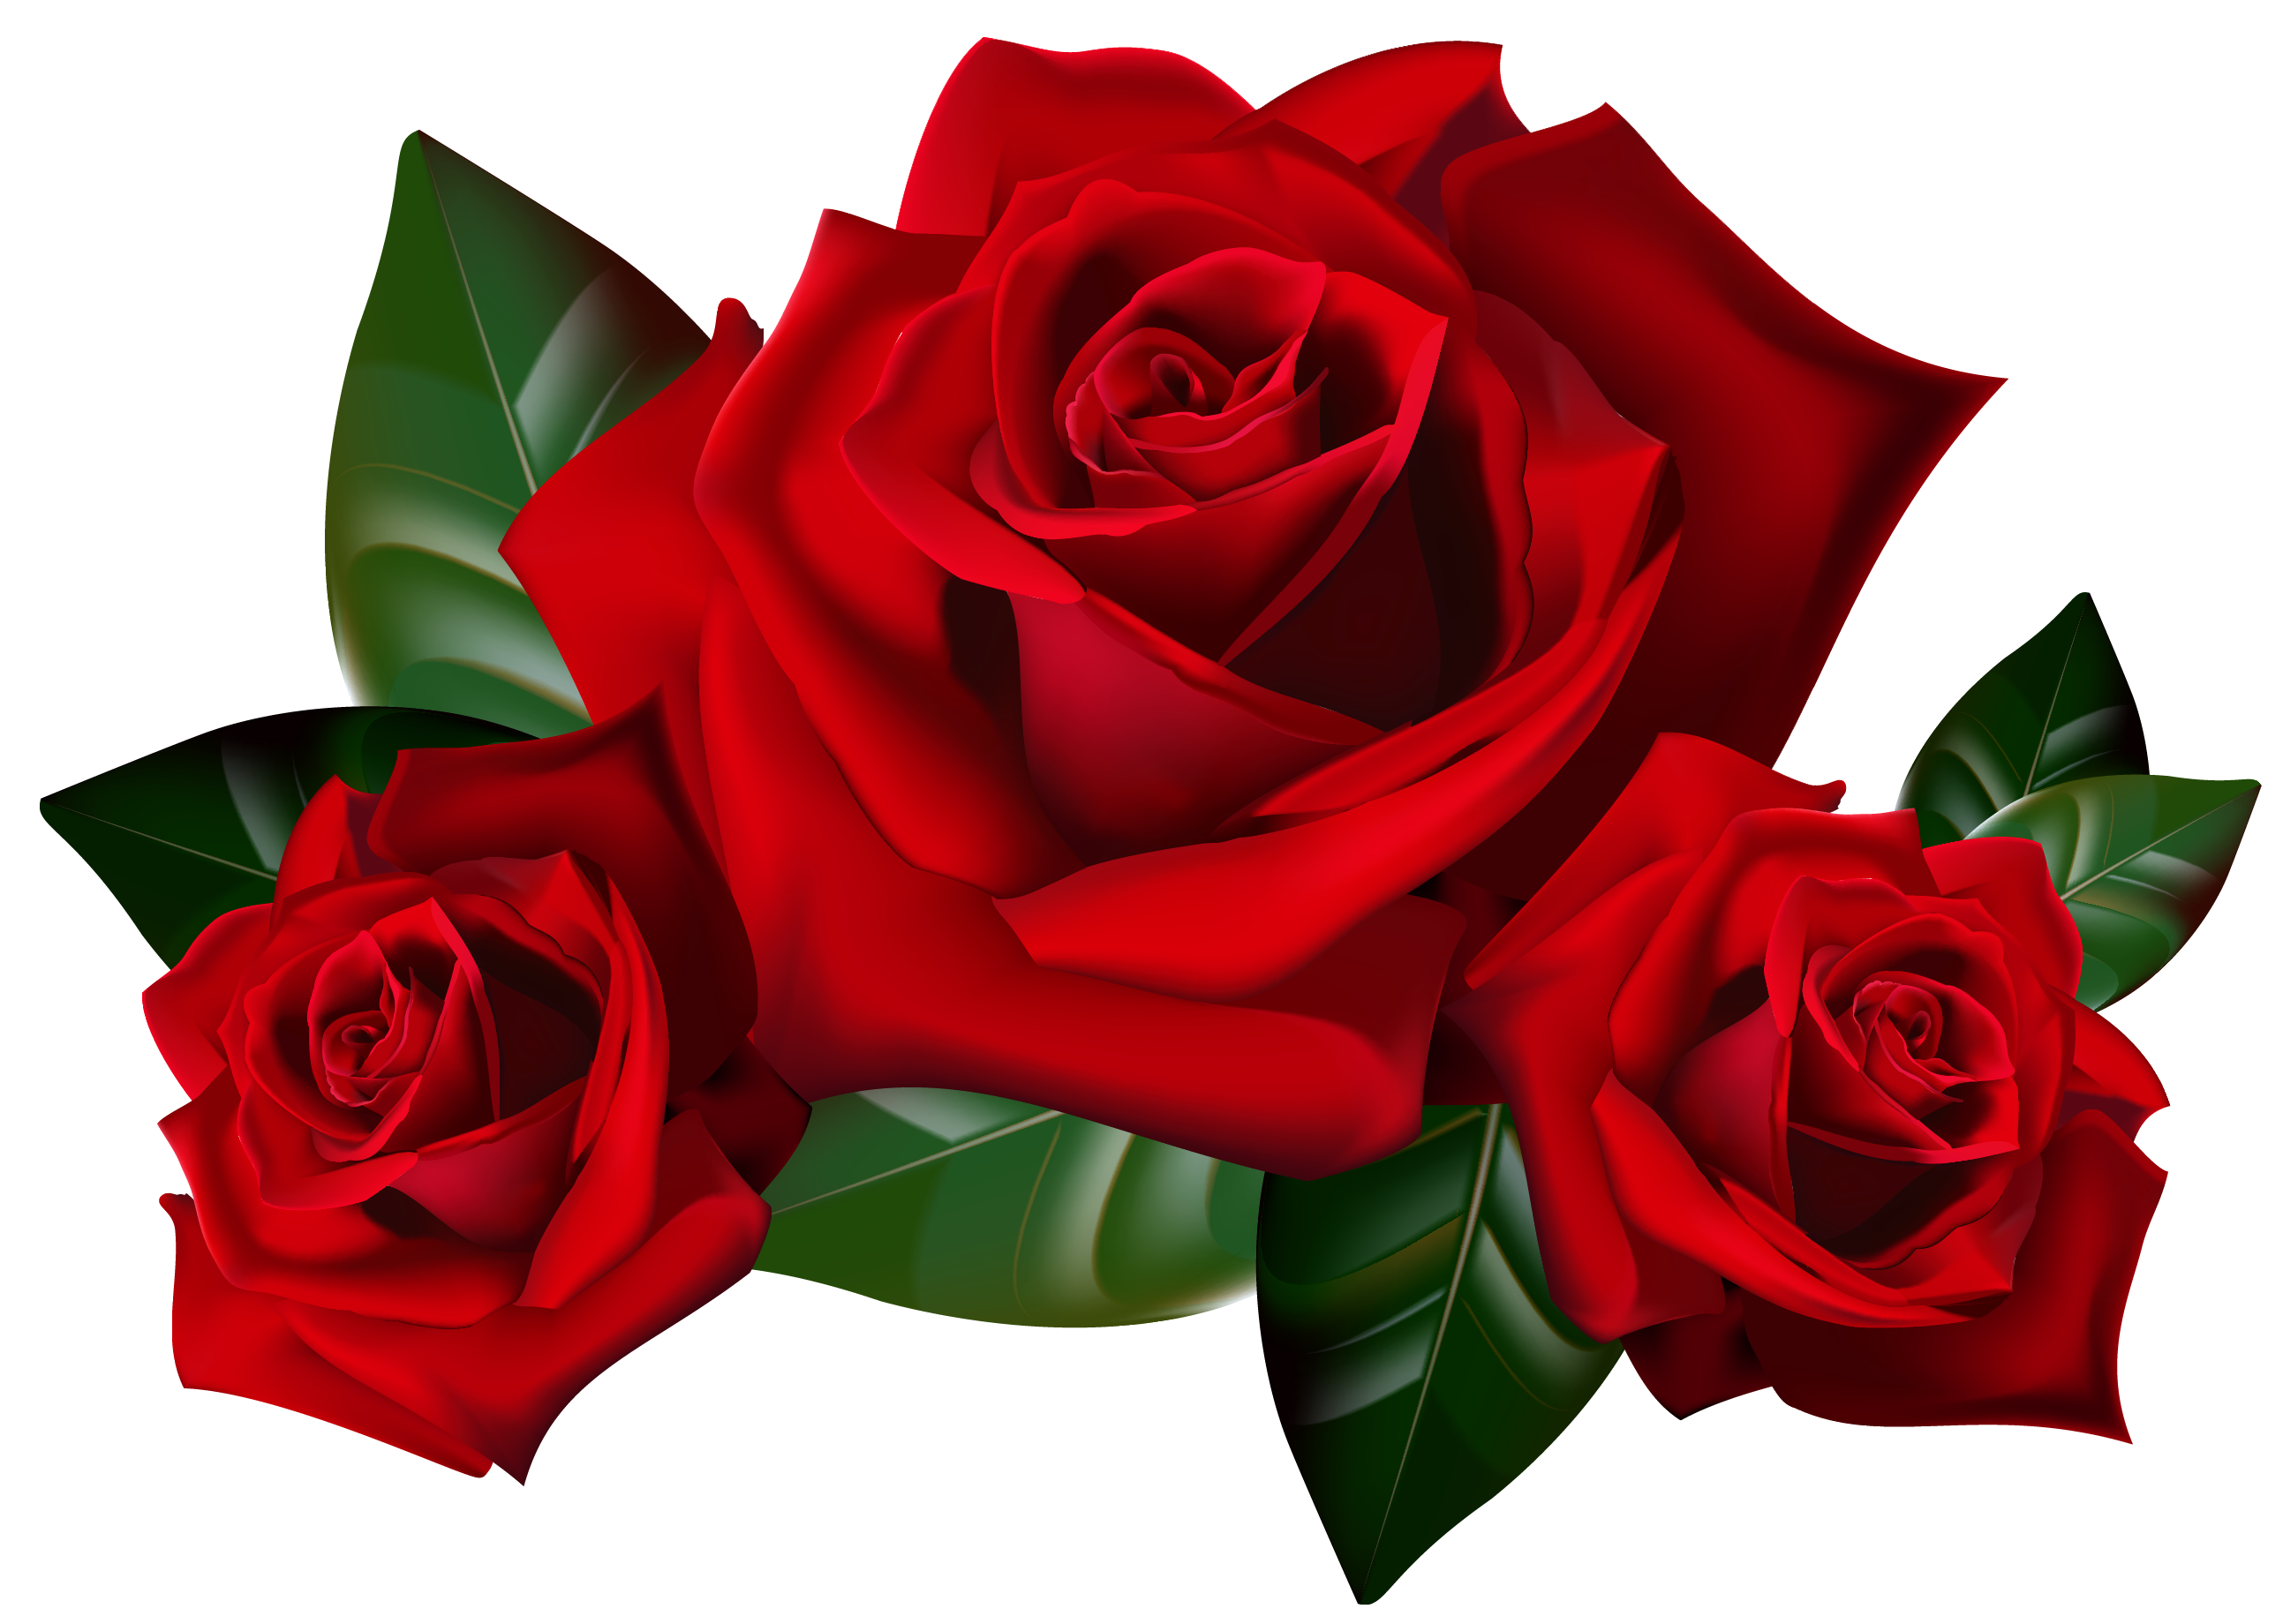 2 roses clipart image transparent download Rose Clip Art Free On Clipart Transparent Png 2 - AZPng image transparent download